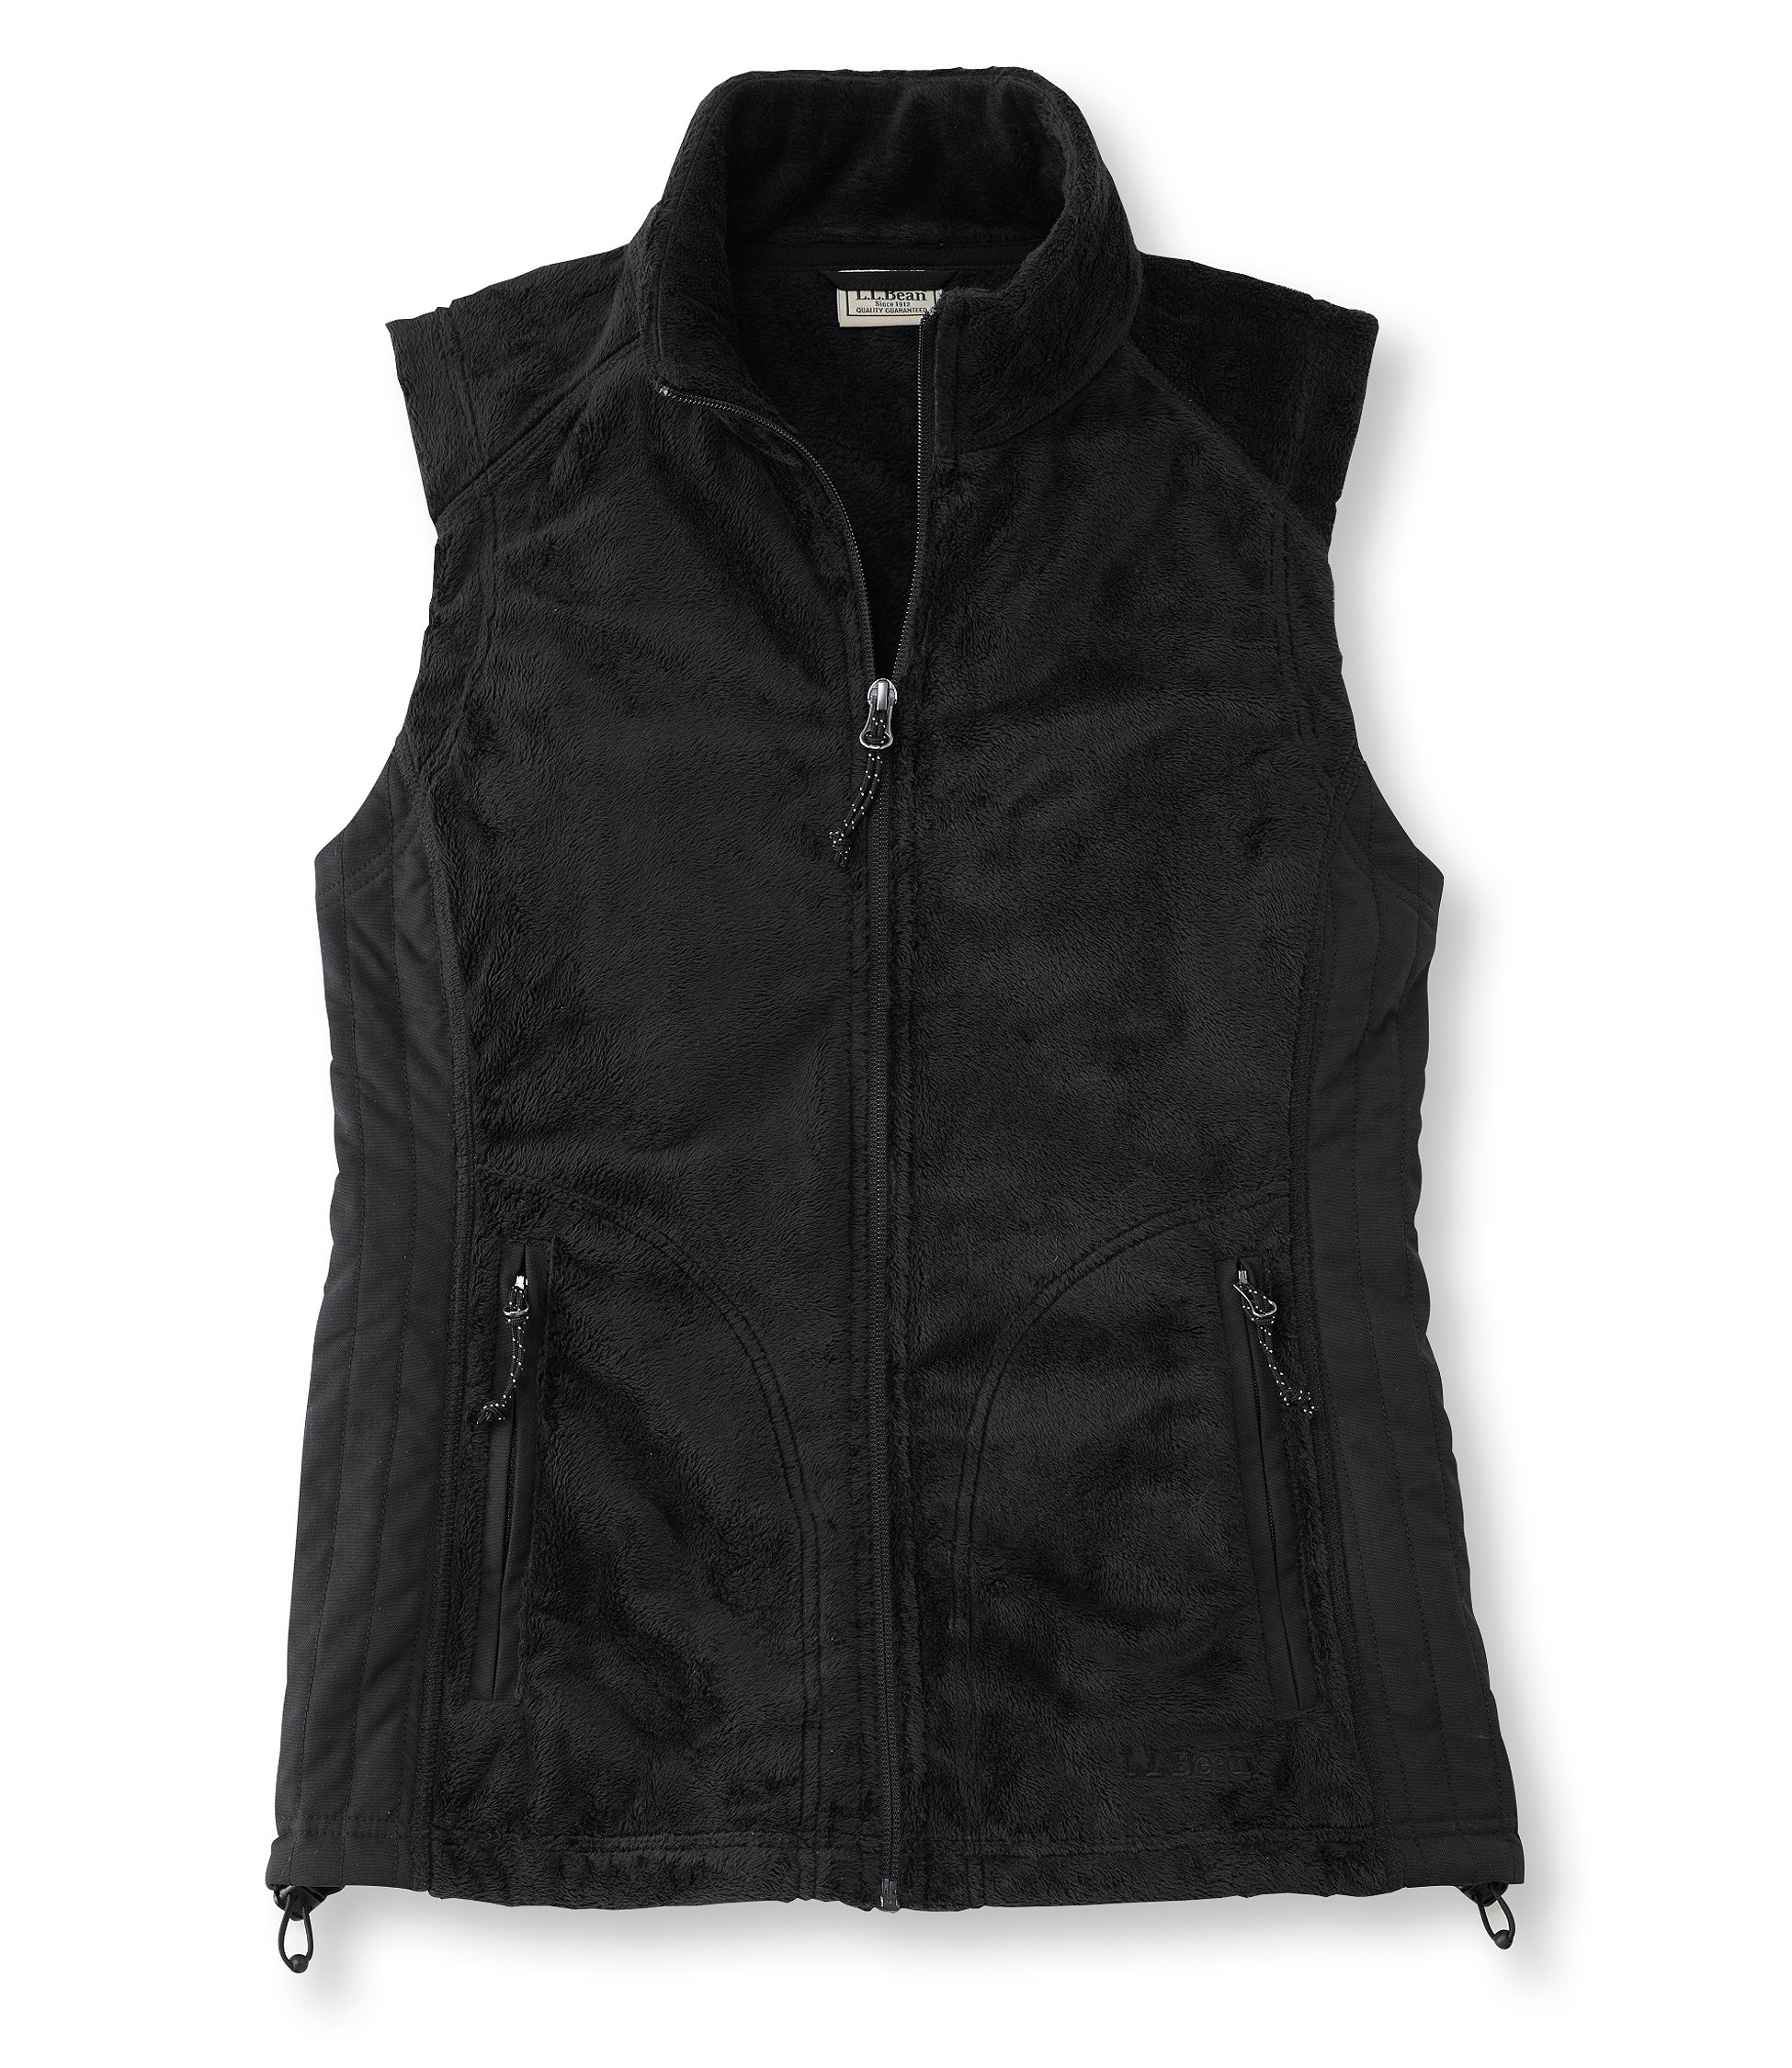 L.L.Bean Alpine Fleece Vest